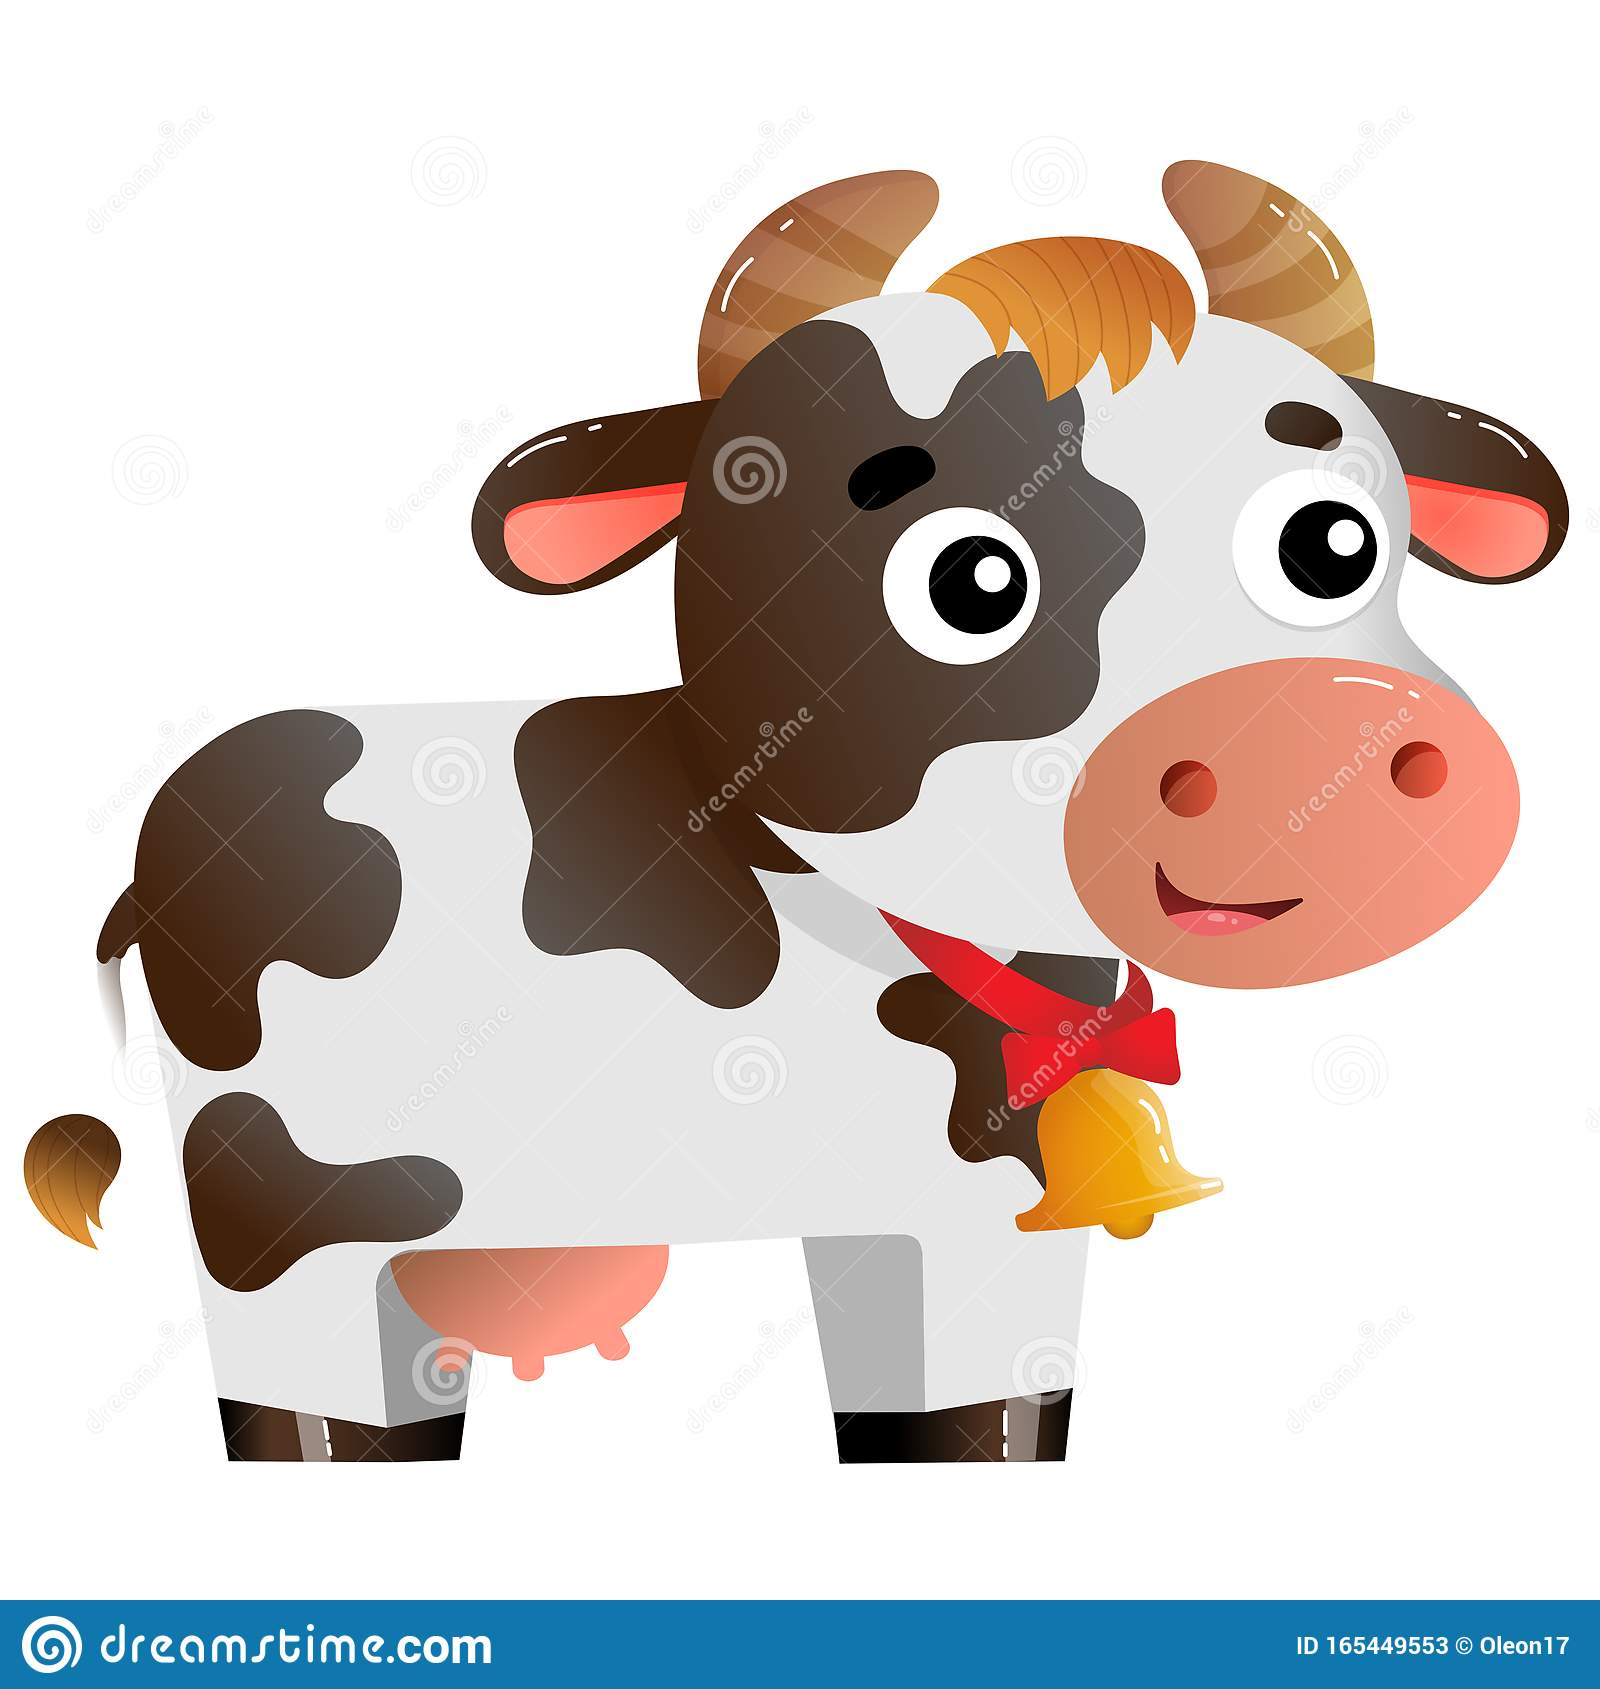 Free Cow Pictures For Children, Download Free Clip Art, Free Clip Art on  Clipart Library